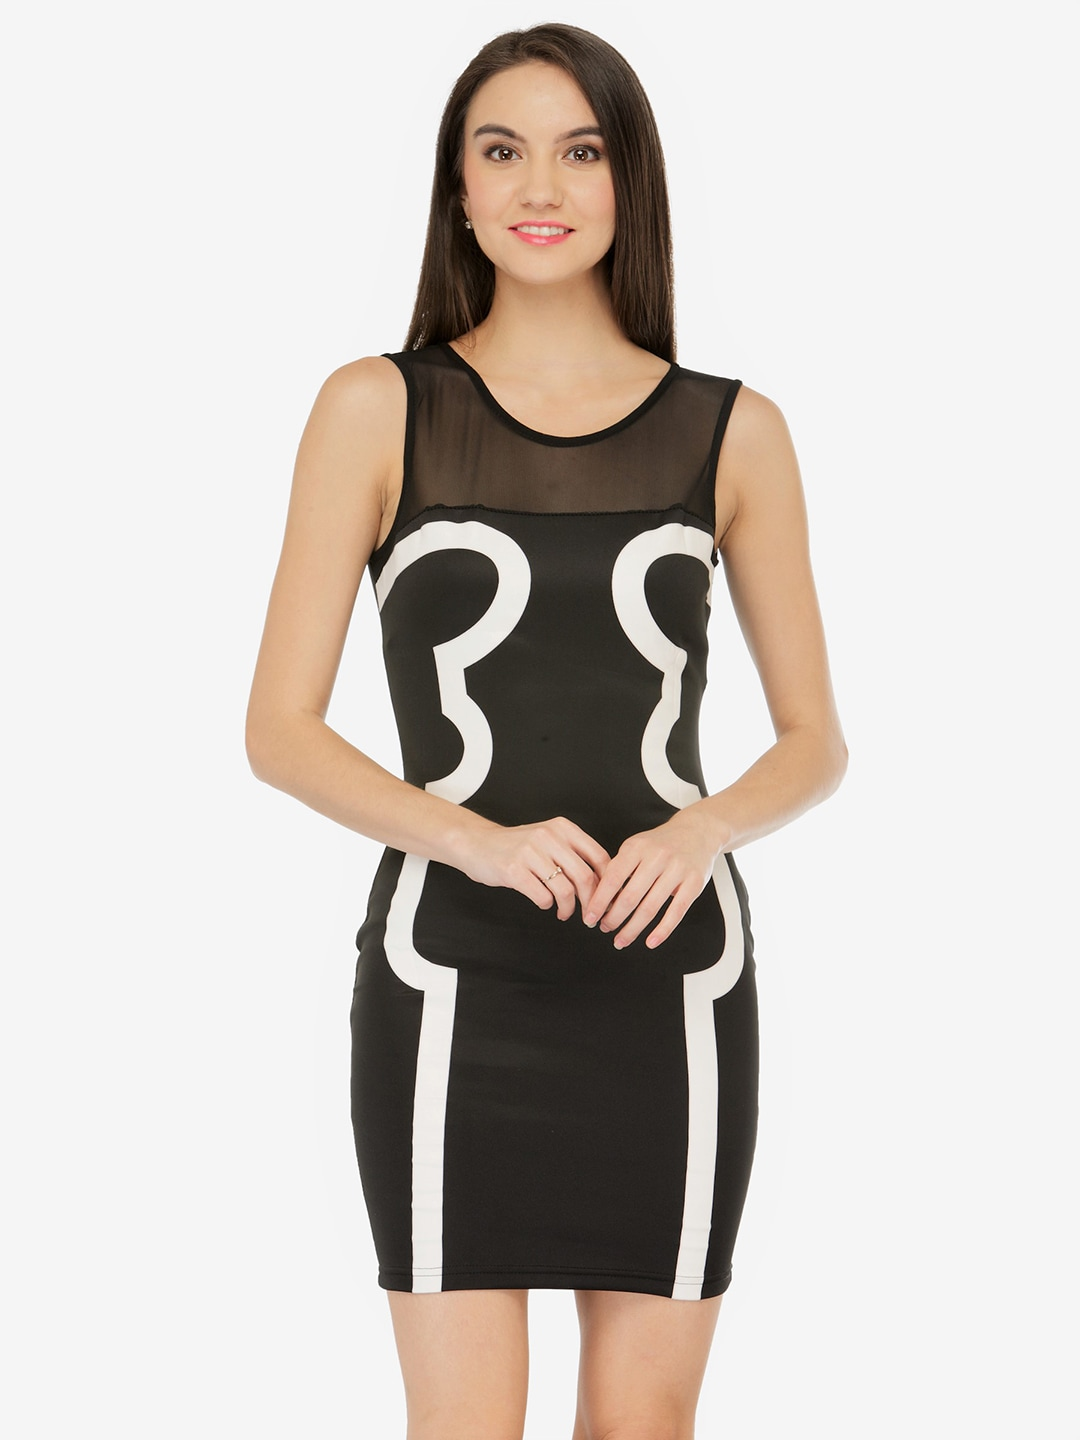 N Gal - Exclusive N Gal Online Store in India at Myntra 91e8ebd52